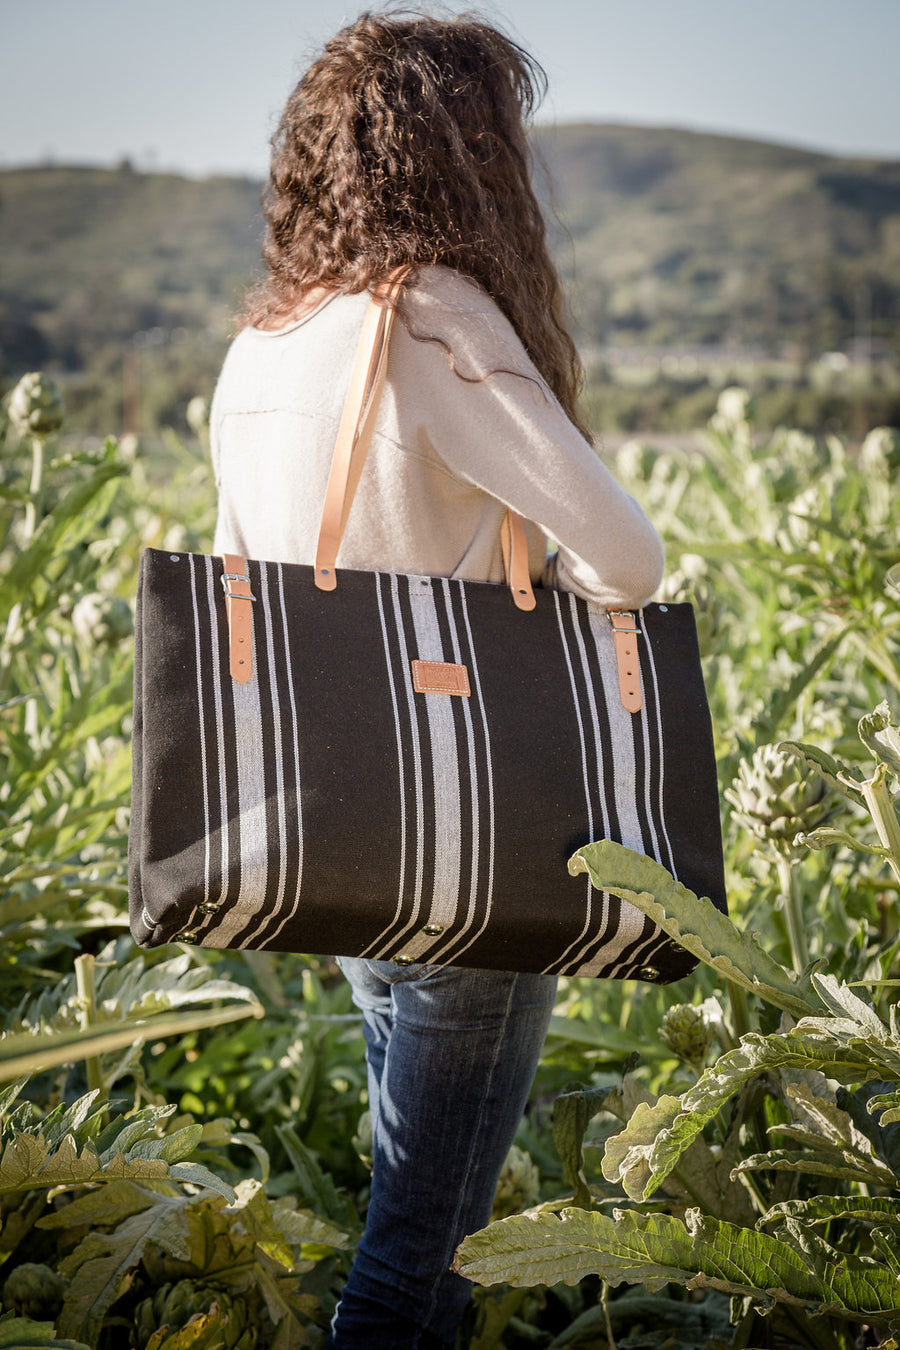 Black and White Getaway Bag